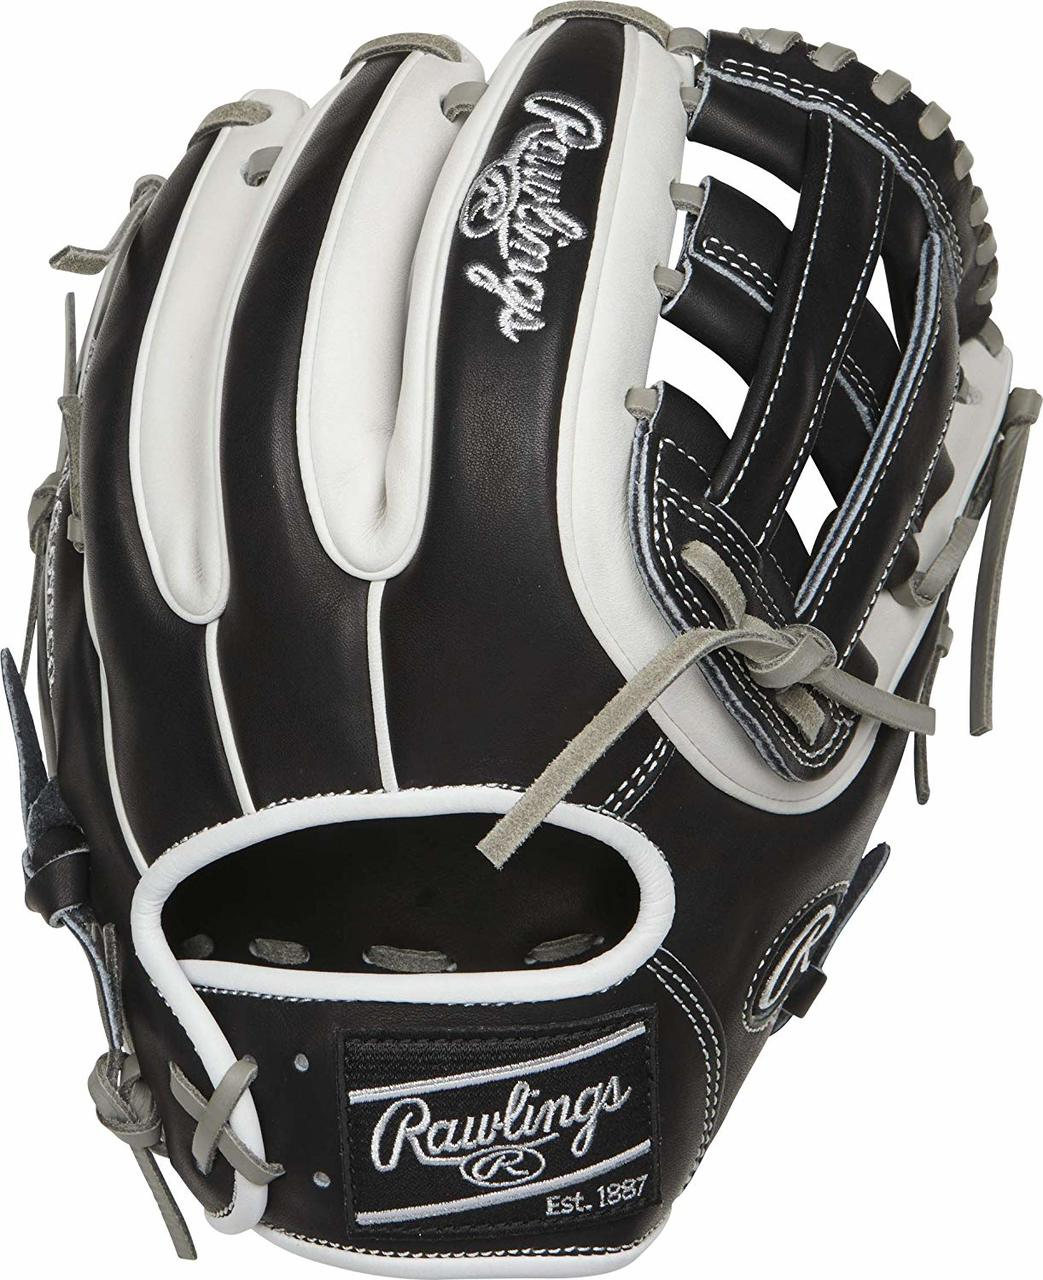 rawlings-heart-of-the-hide-pro314-11-5-baseball-glove-right-hand-throw PRO314-6BW-RightHandThrow Rawlings 083321598791 Packed with pro features and a quick break-in process the Rawlings